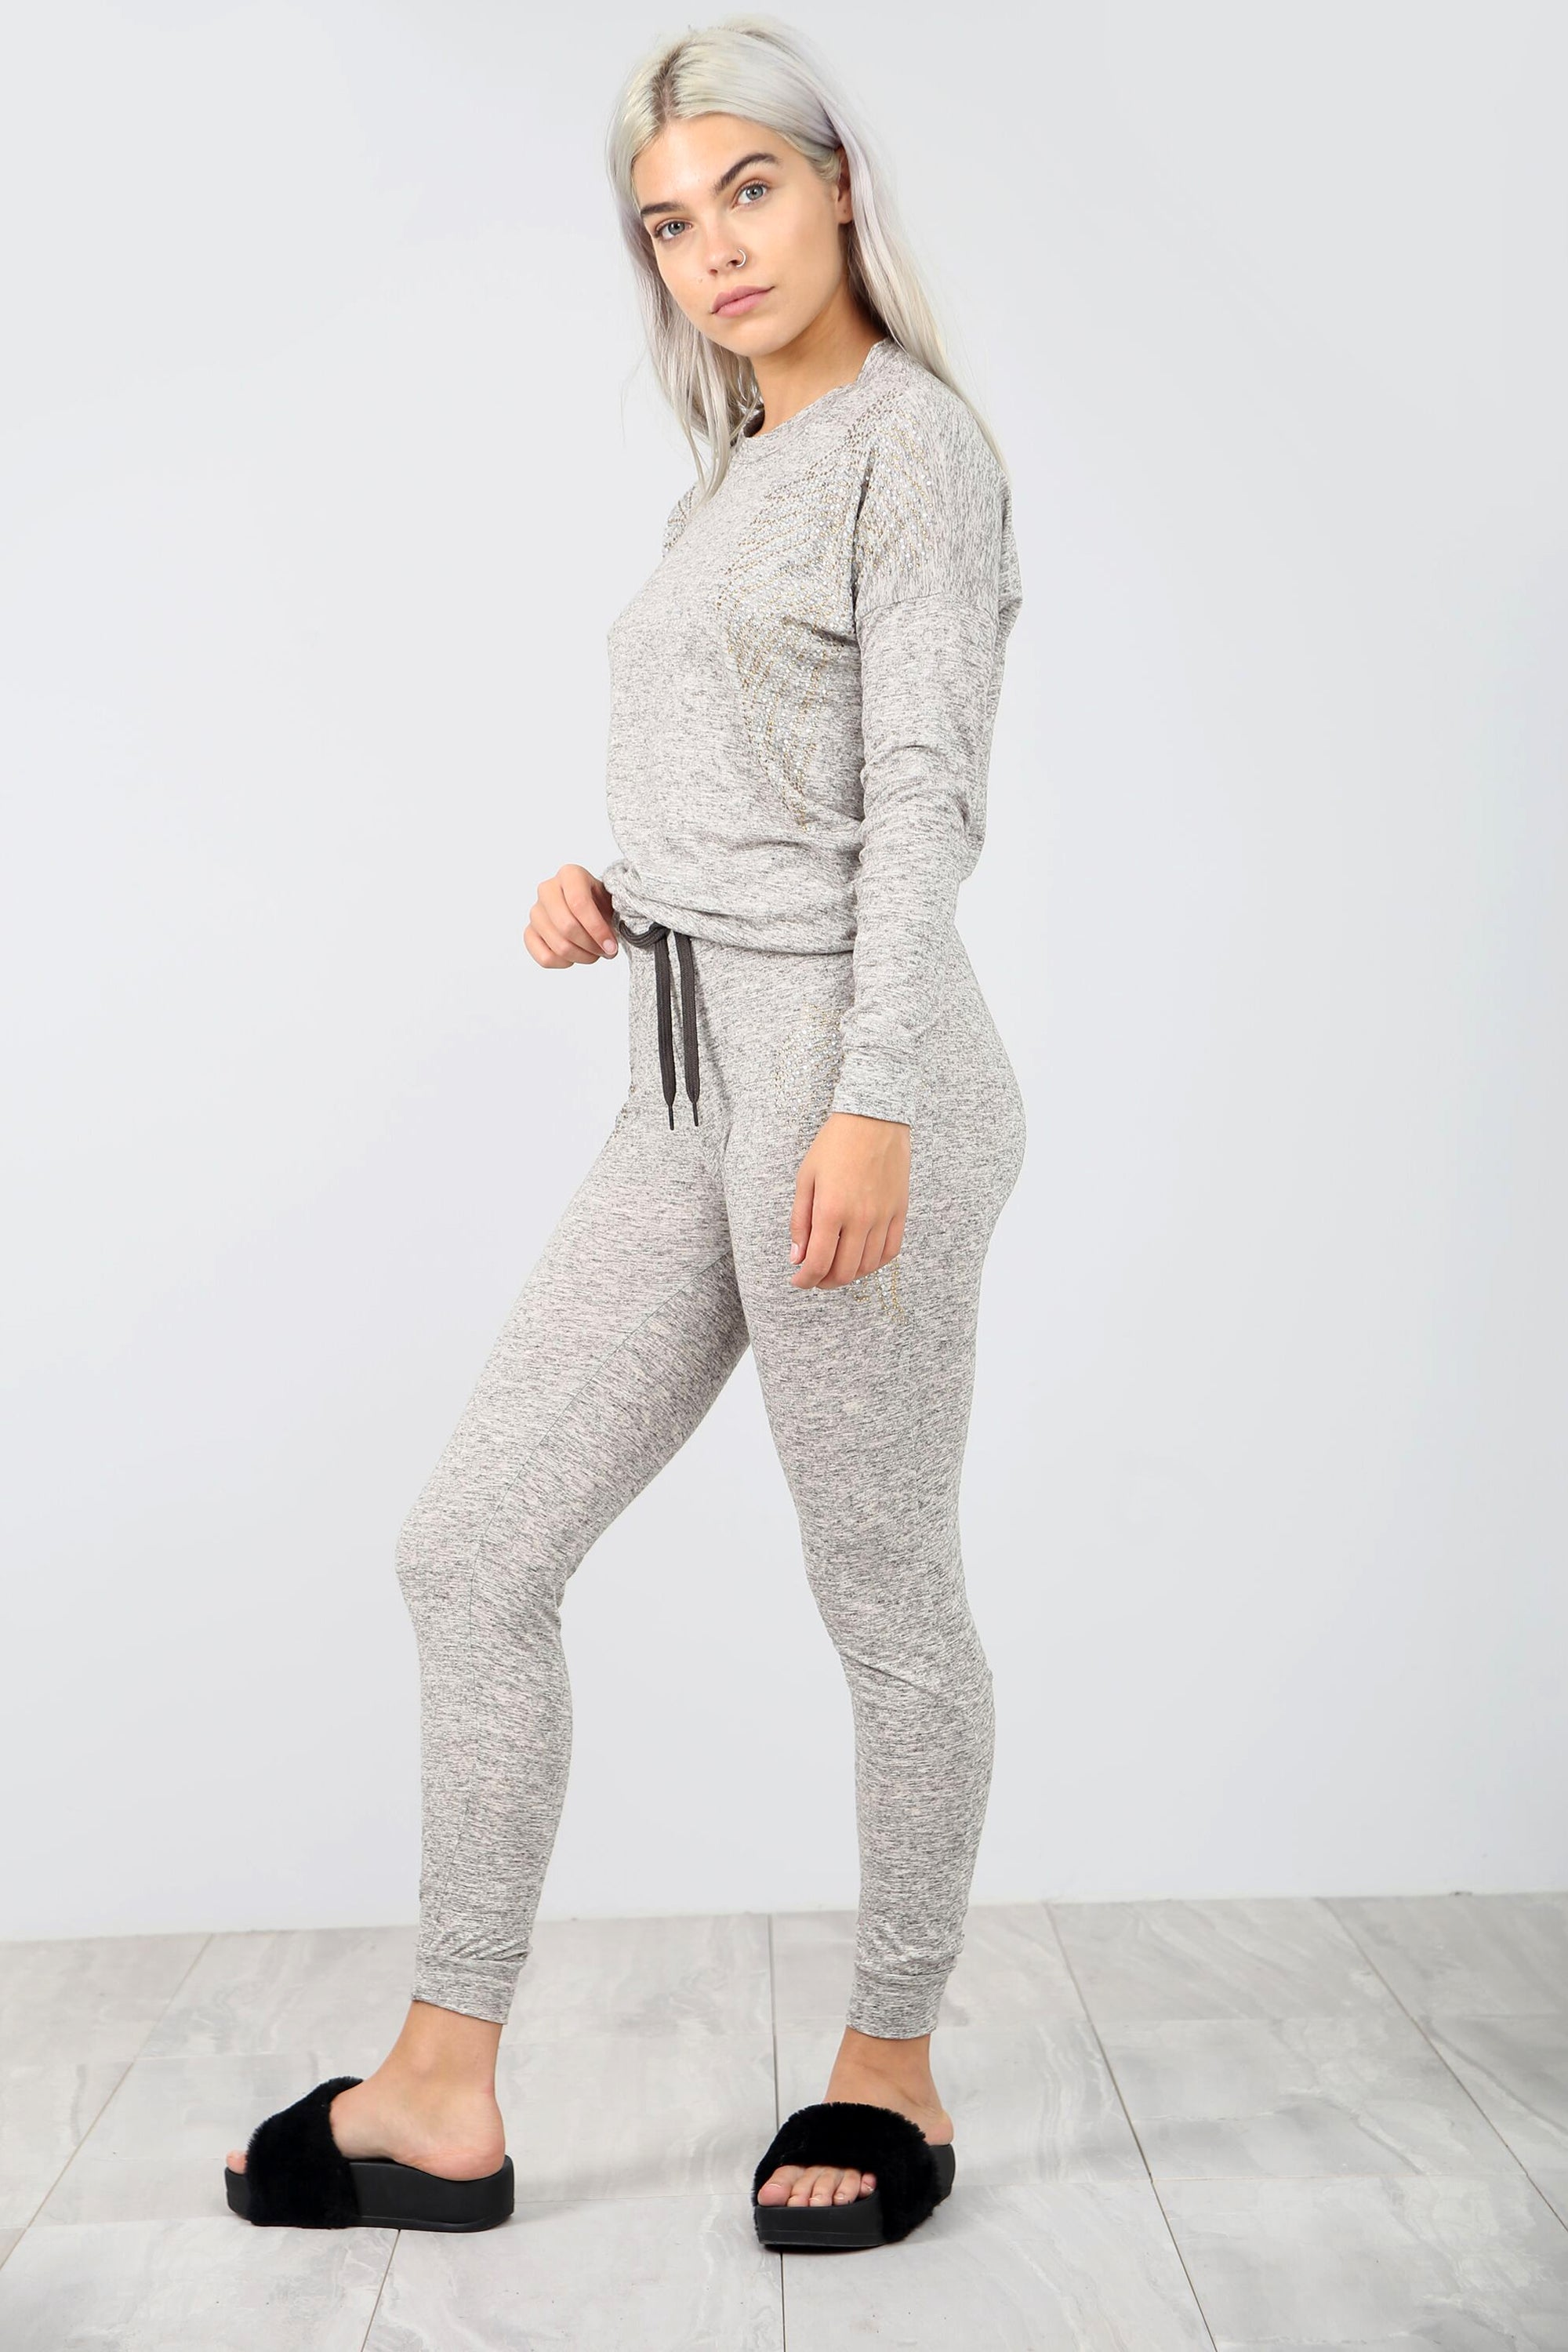 Diamonte Fine Knit Grey Lounge Wear Coord Set - bejealous-com